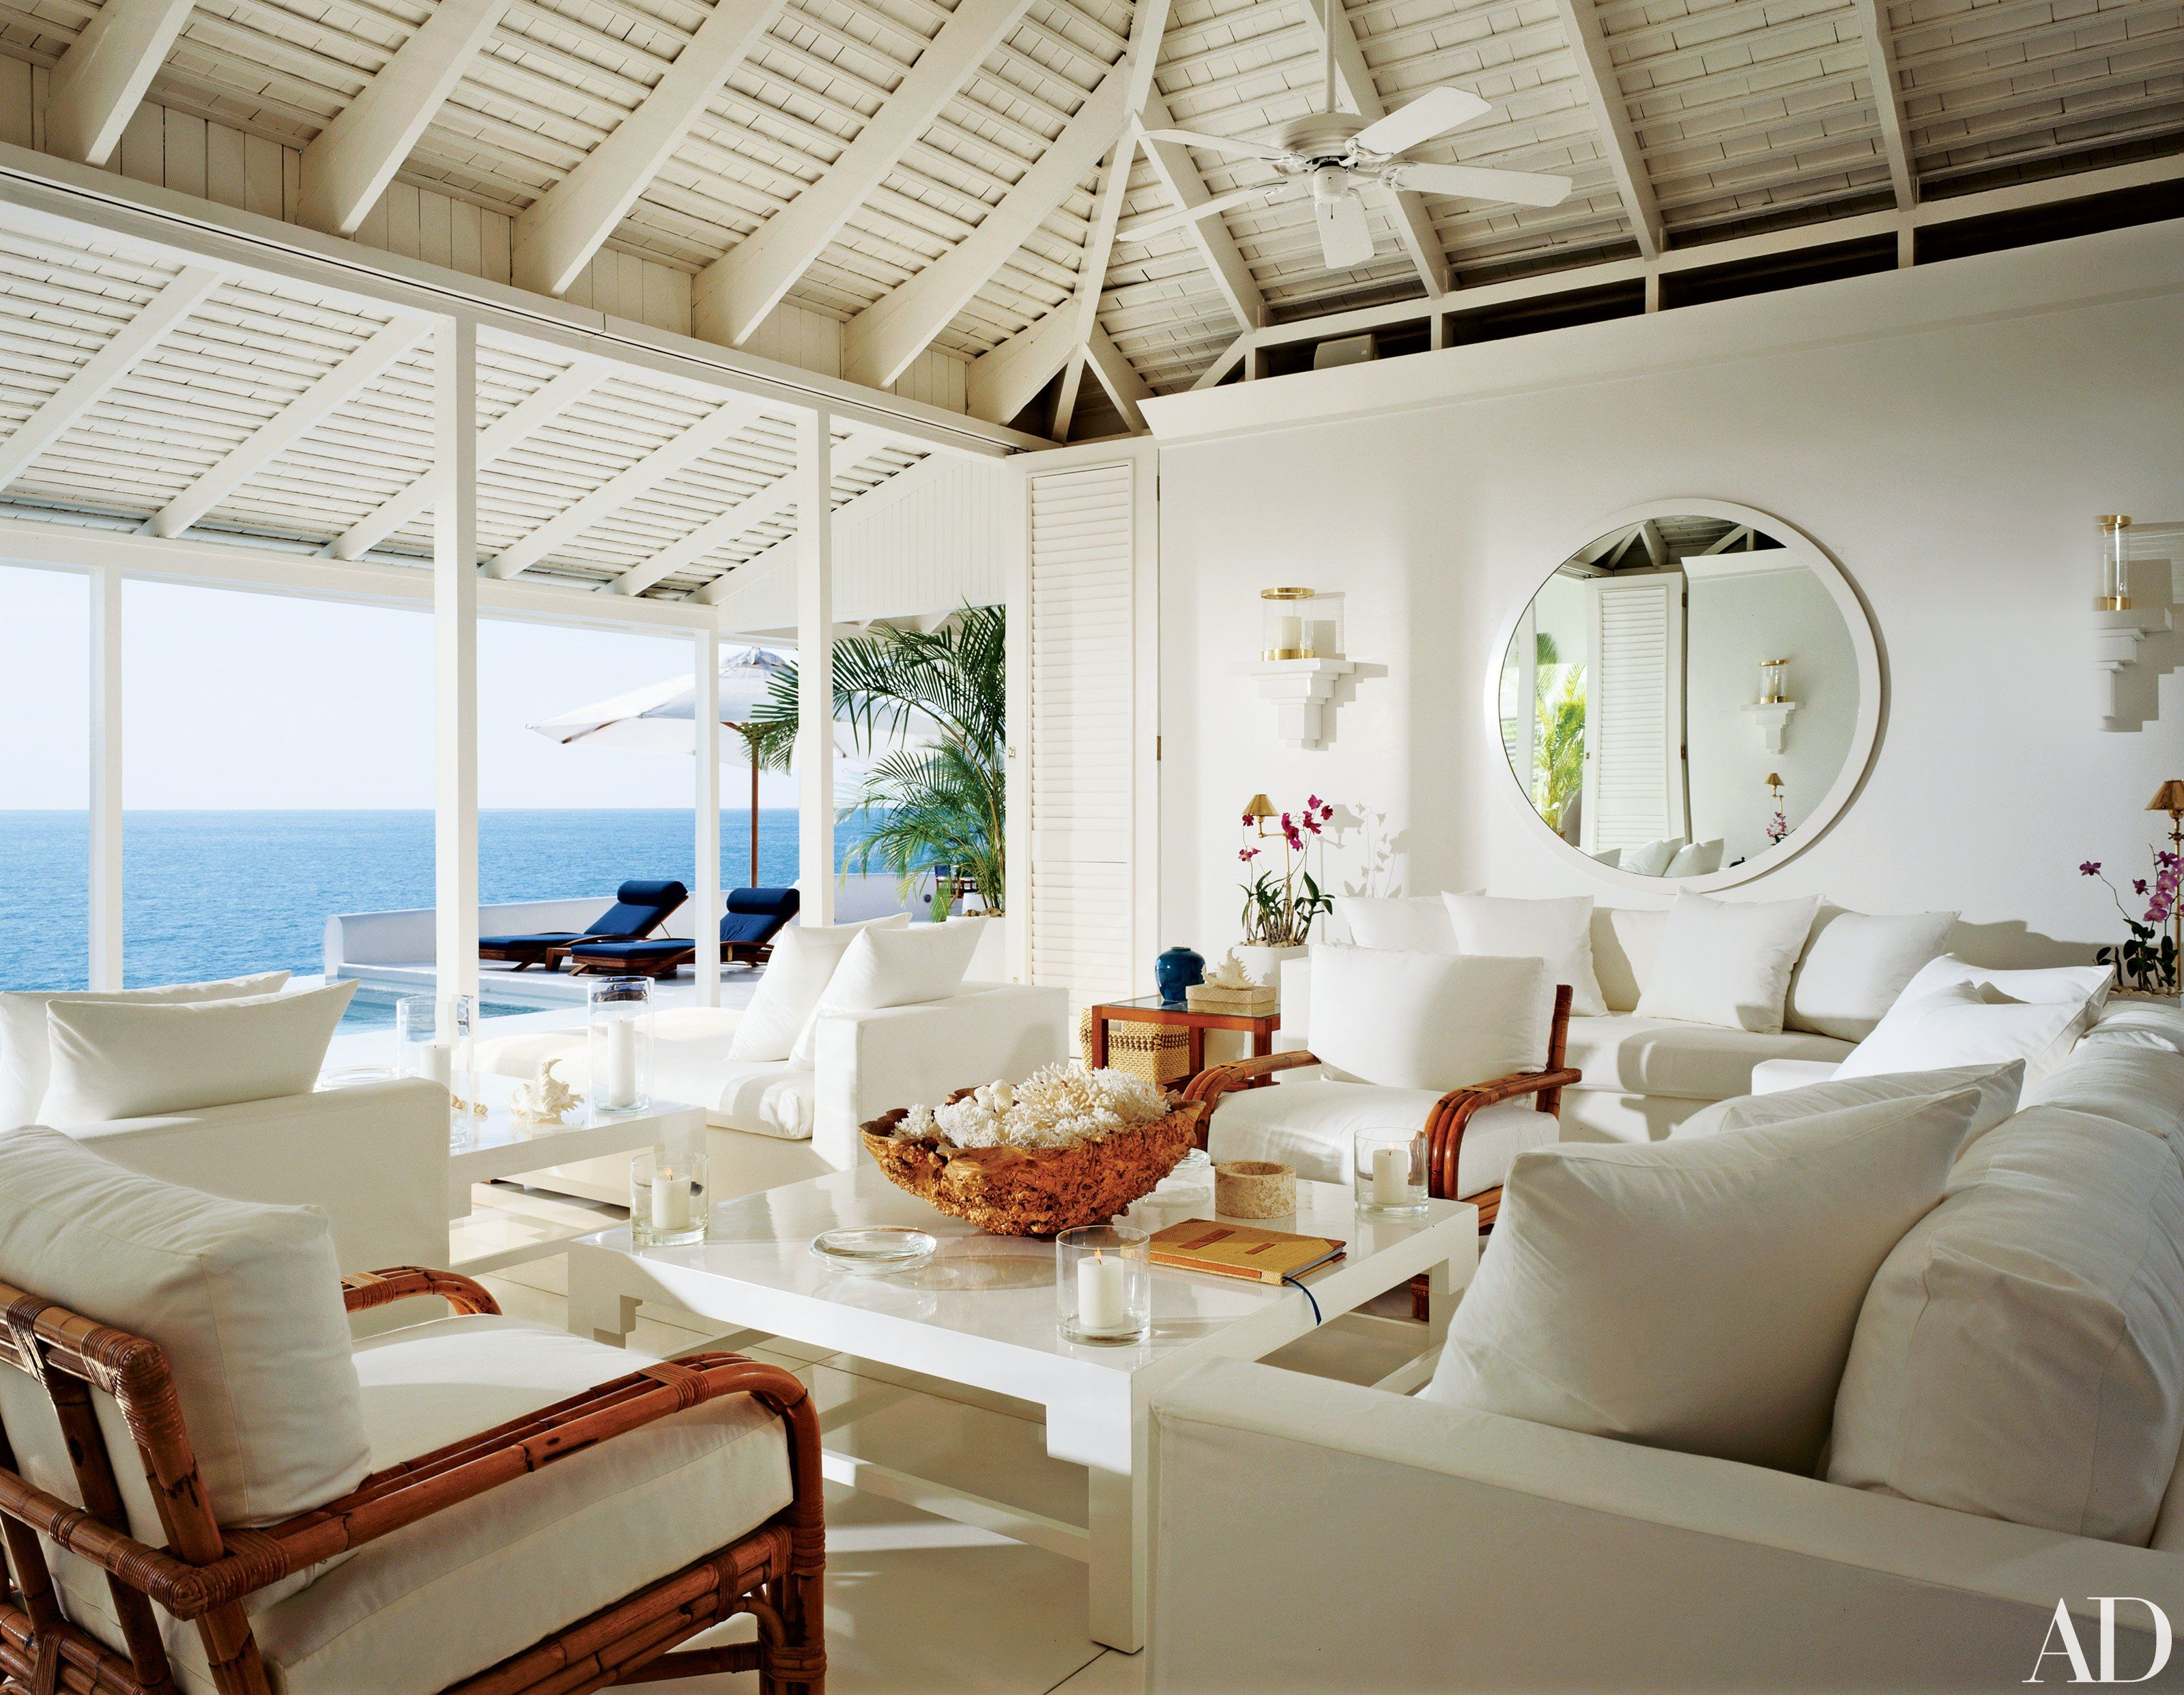 Beach Living Room Design Classy Take A Look Inside Ralph Lauren's Twohouse Retreat In Jamaica Design Ideas